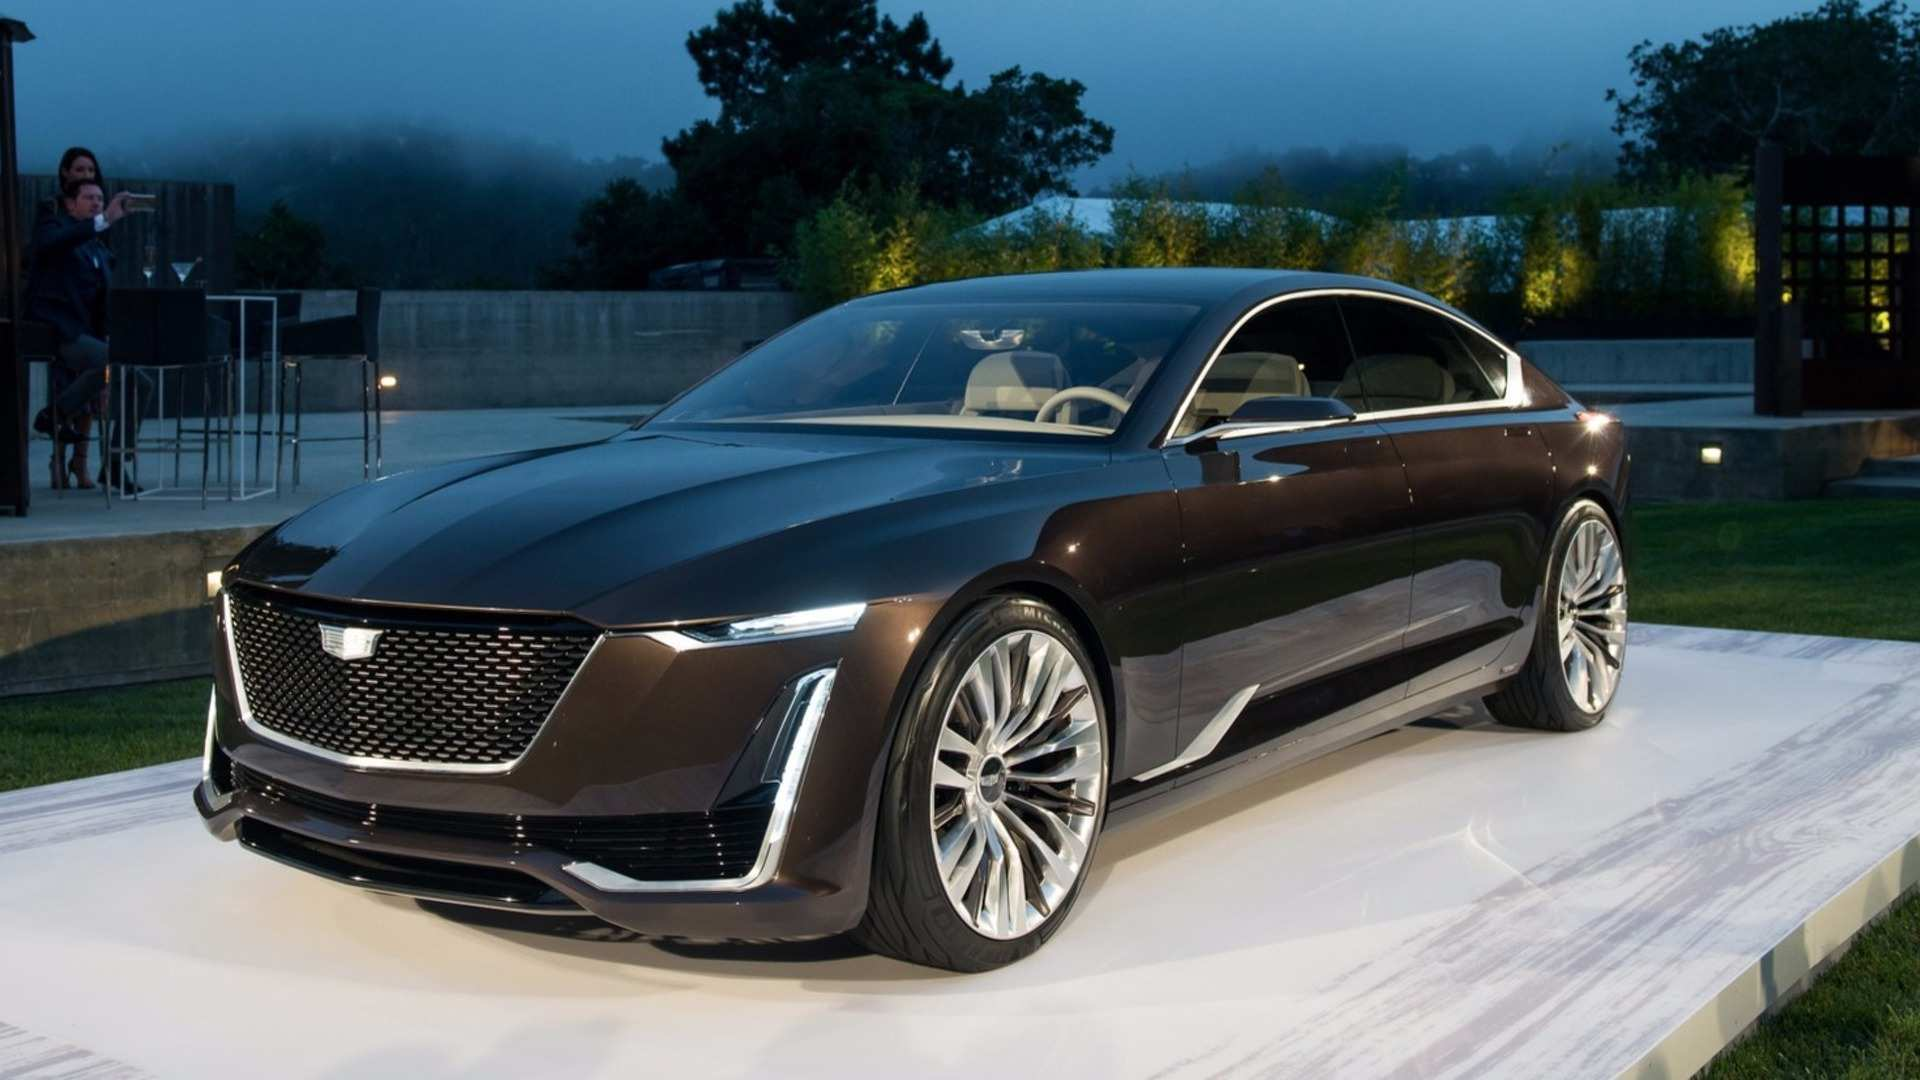 83 Great Cadillac Flagship 2020 Spesification with Cadillac Flagship 2020